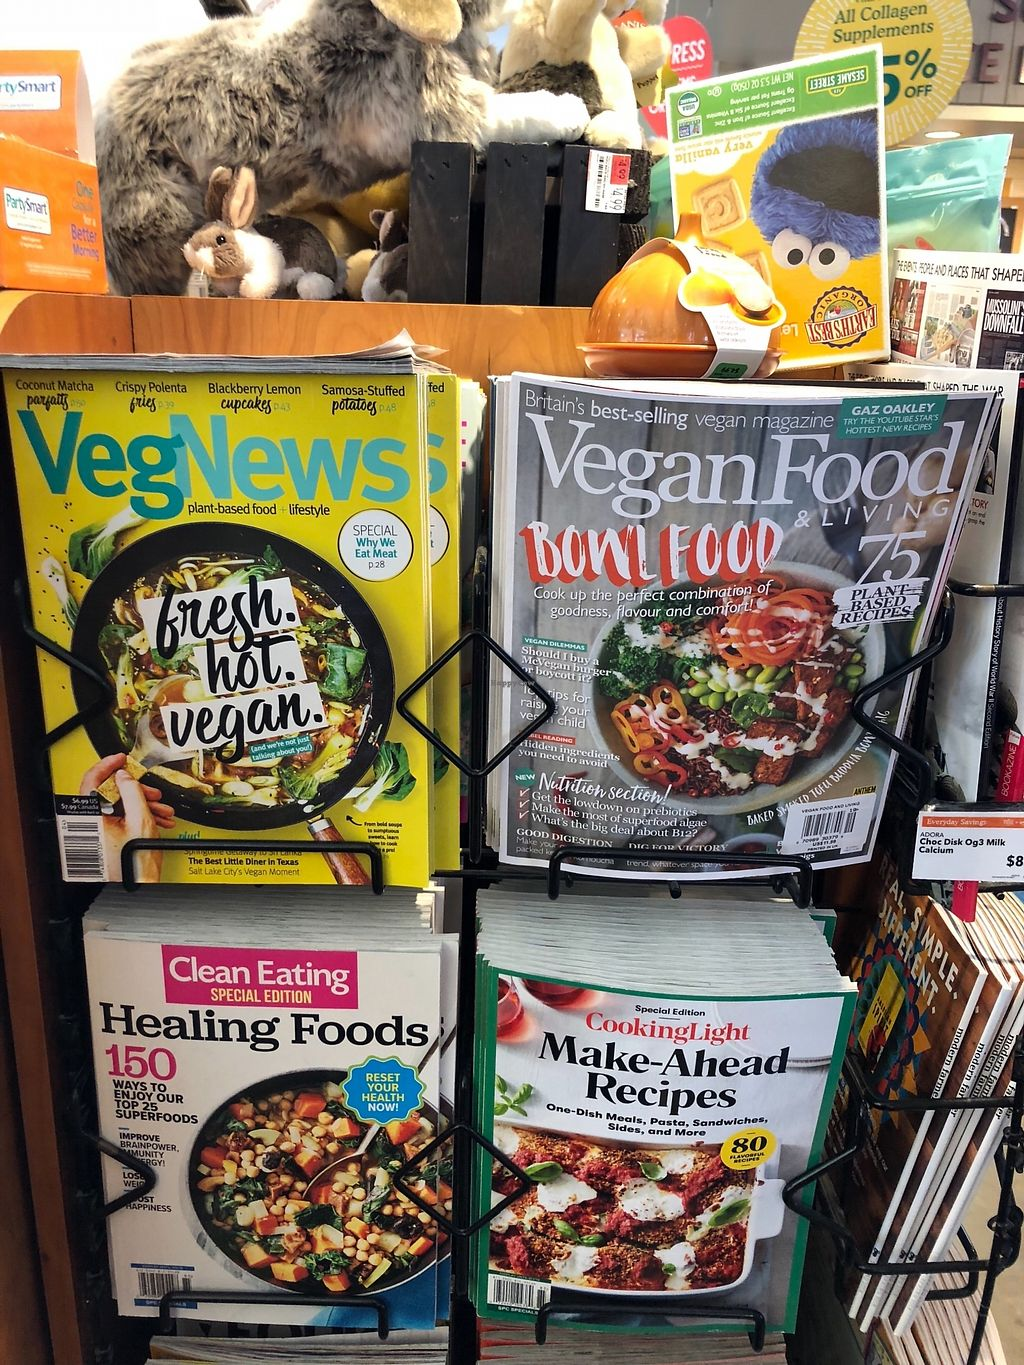 "Photo of Whole Foods Market  by <a href=""/members/profile/SaraSabo"">SaraSabo</a> <br/>Vegan magazines at eye level at check out! <br/> March 19, 2018  - <a href='/contact/abuse/image/4372/372722'>Report</a>"